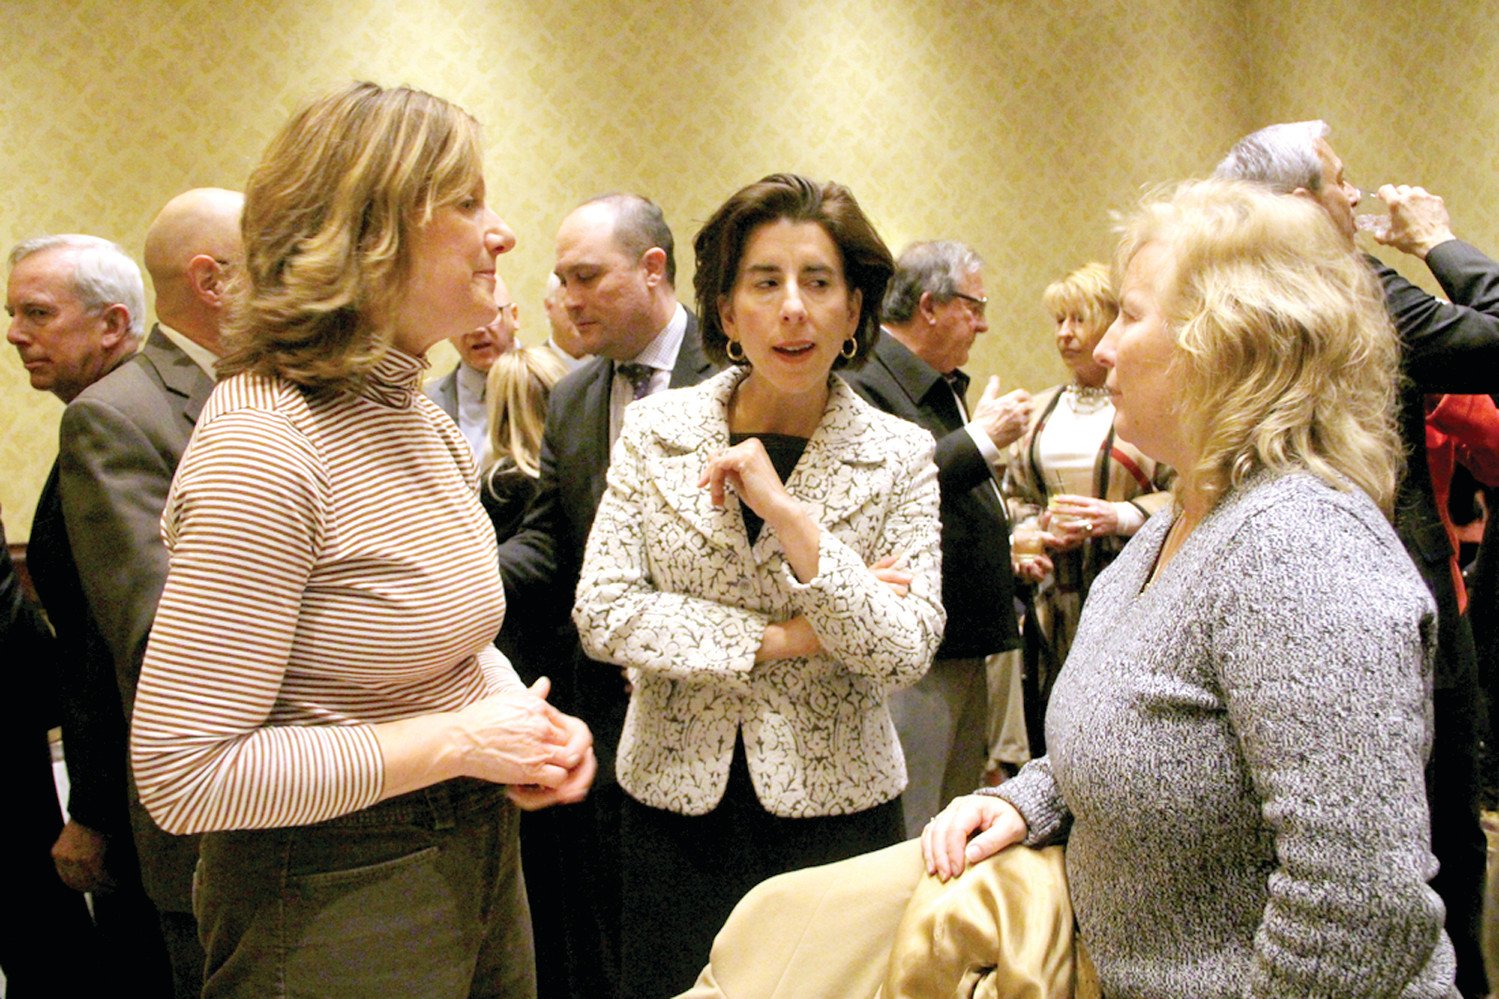 MAKING INTRODUCTIONS: Louise Marcus (left) and Melanie Flamand, both graduates of the Goldman Sachs 10,000 Small Business program, talk with Gov. Gina Raimondo.